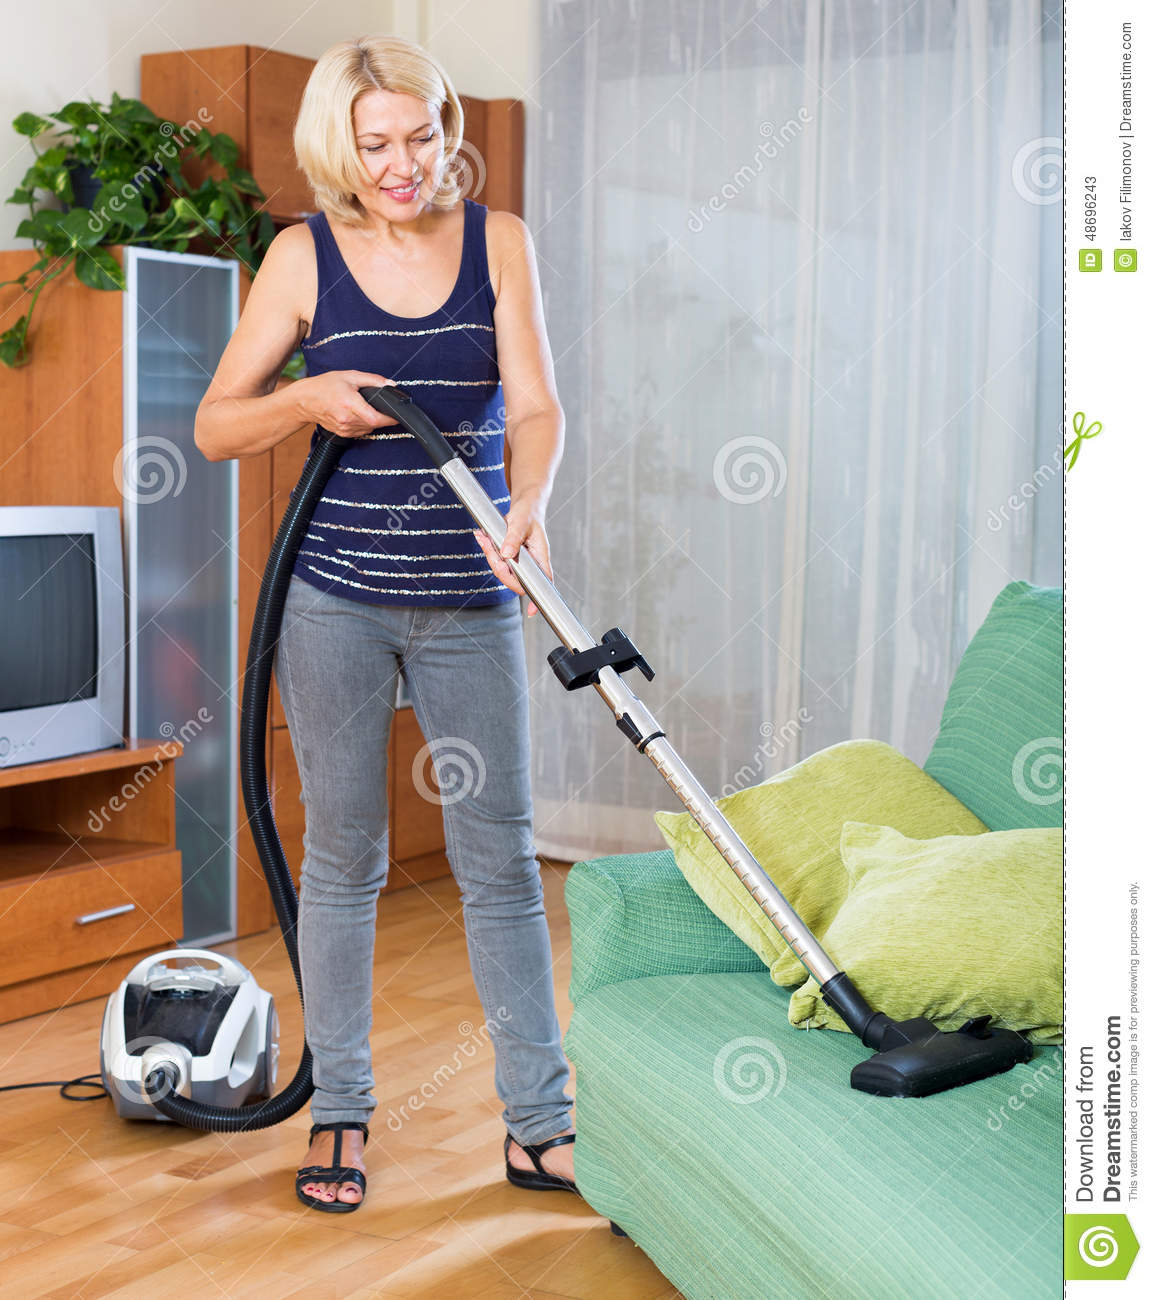 Girl In Jeans Vacuuming The House Royalty Free Stock